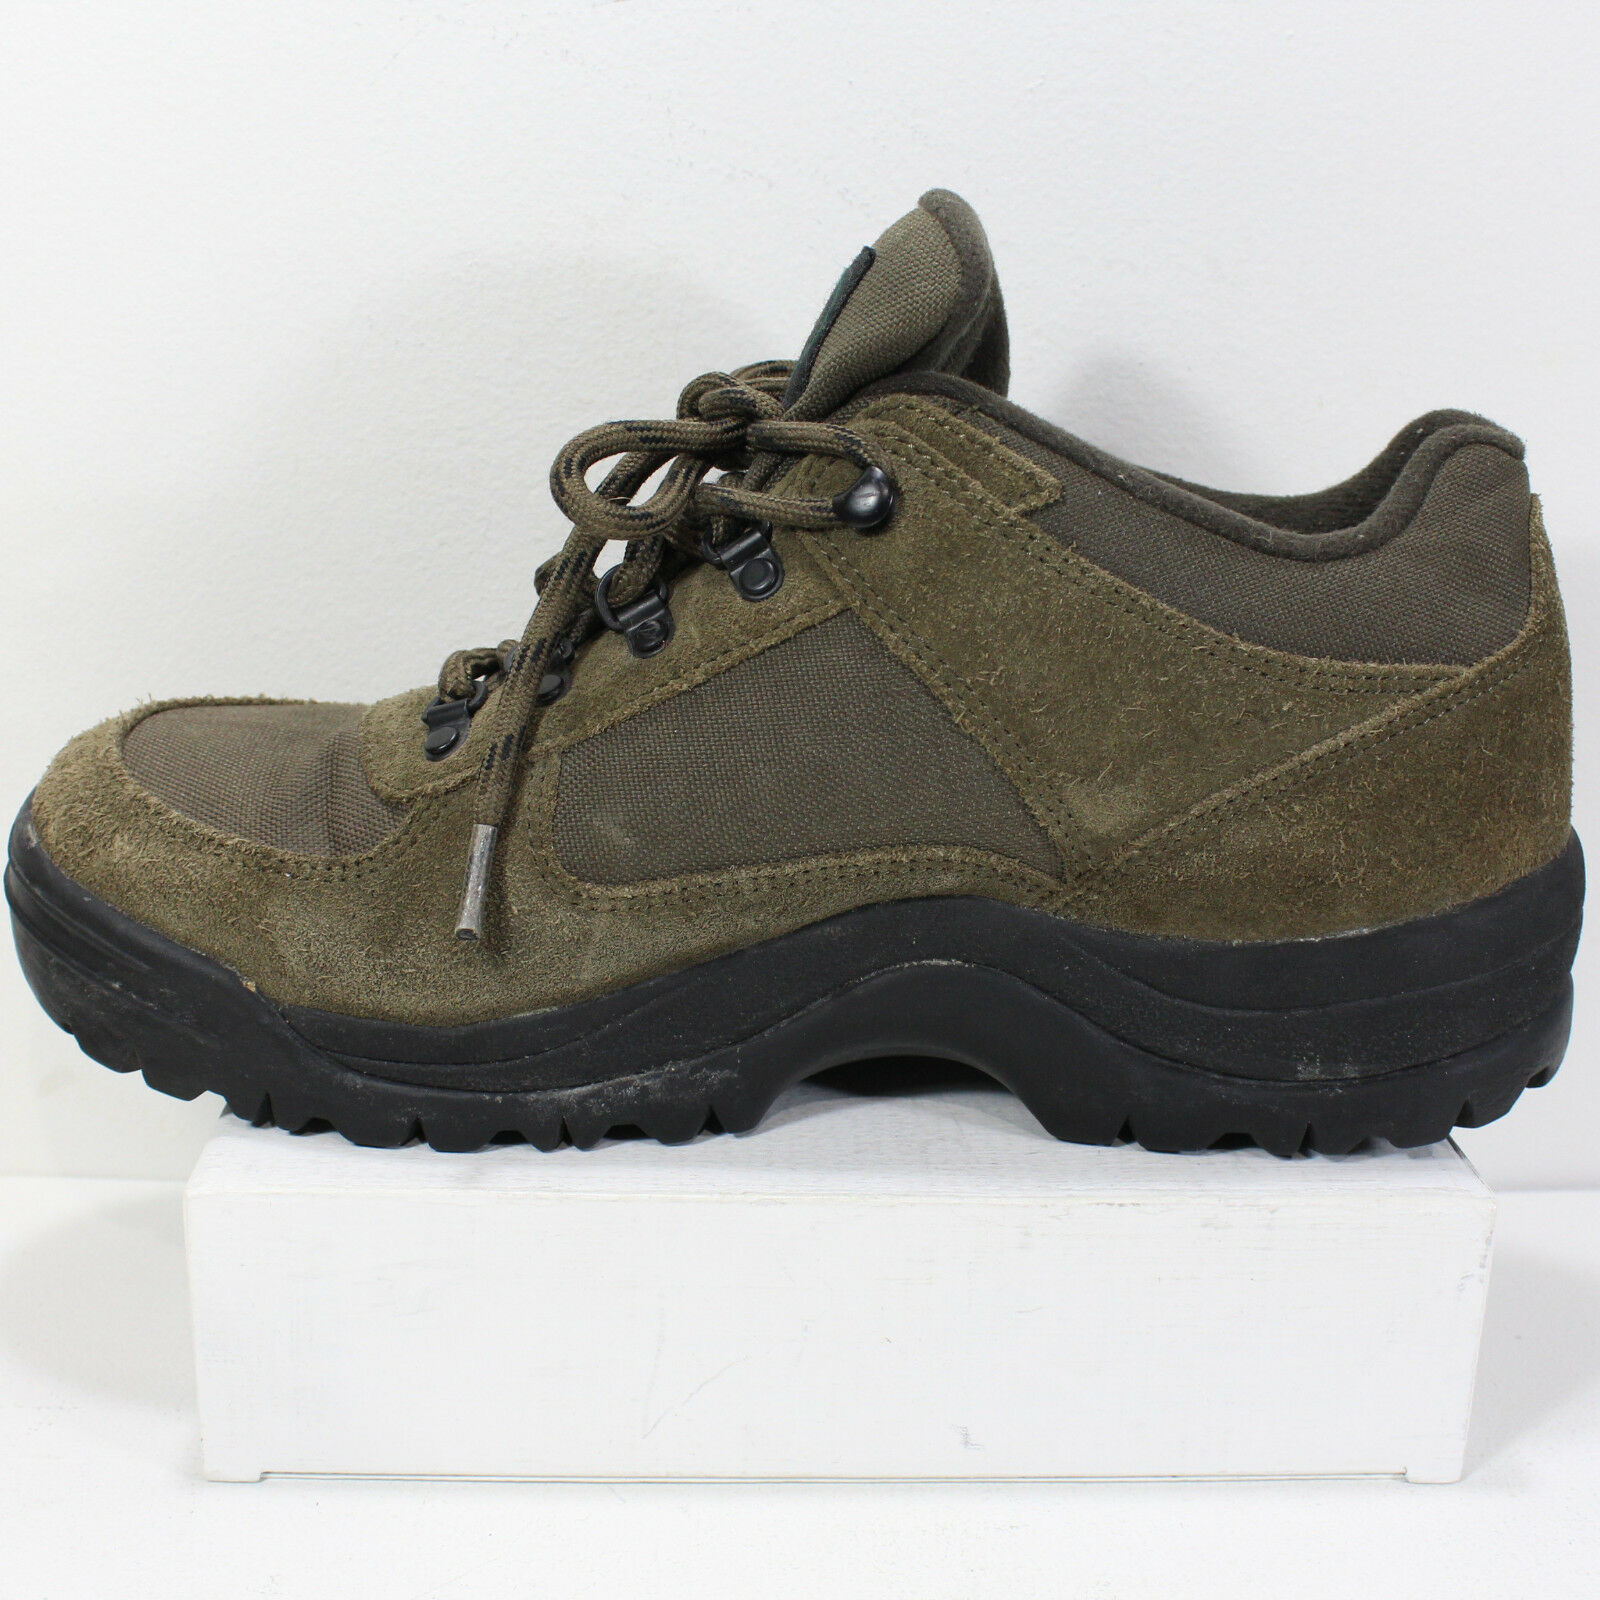 Mens 10.5 M Vasque Talus Trek Walking Hiking shoes Low Boots Lace-Up OD Green